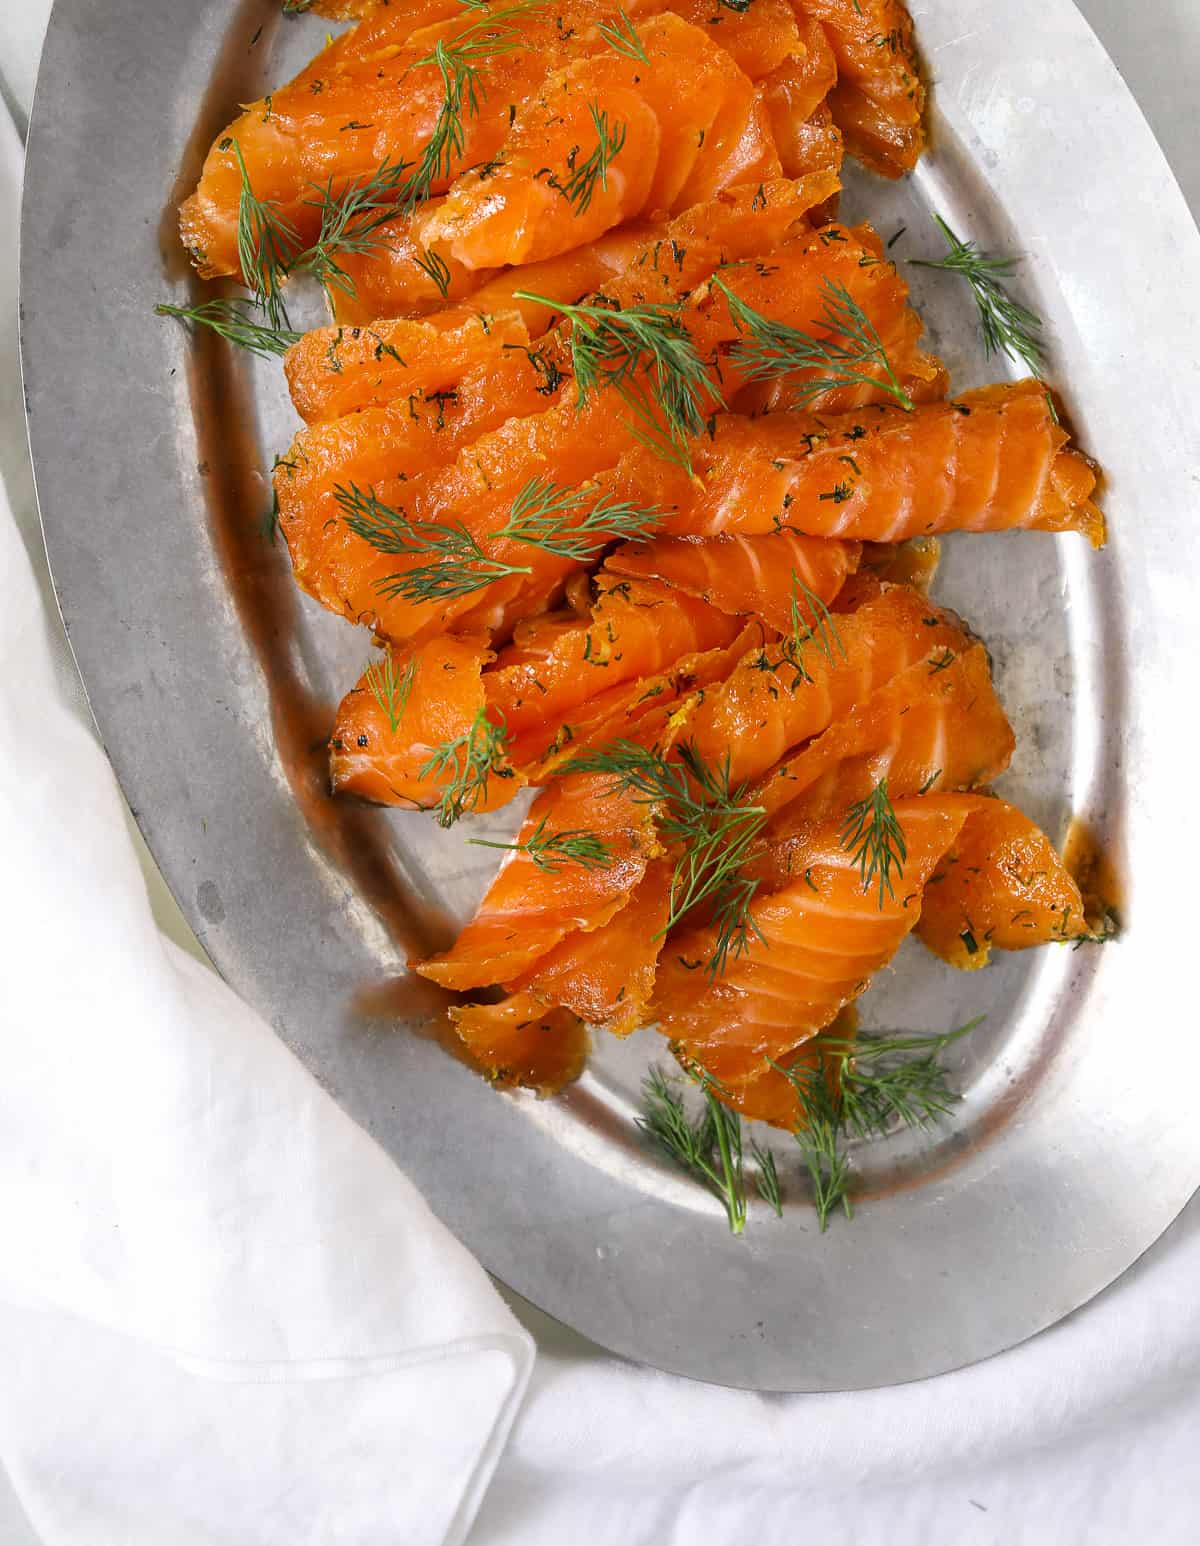 citrus cured salmon on a silver platter topped with fresh dill